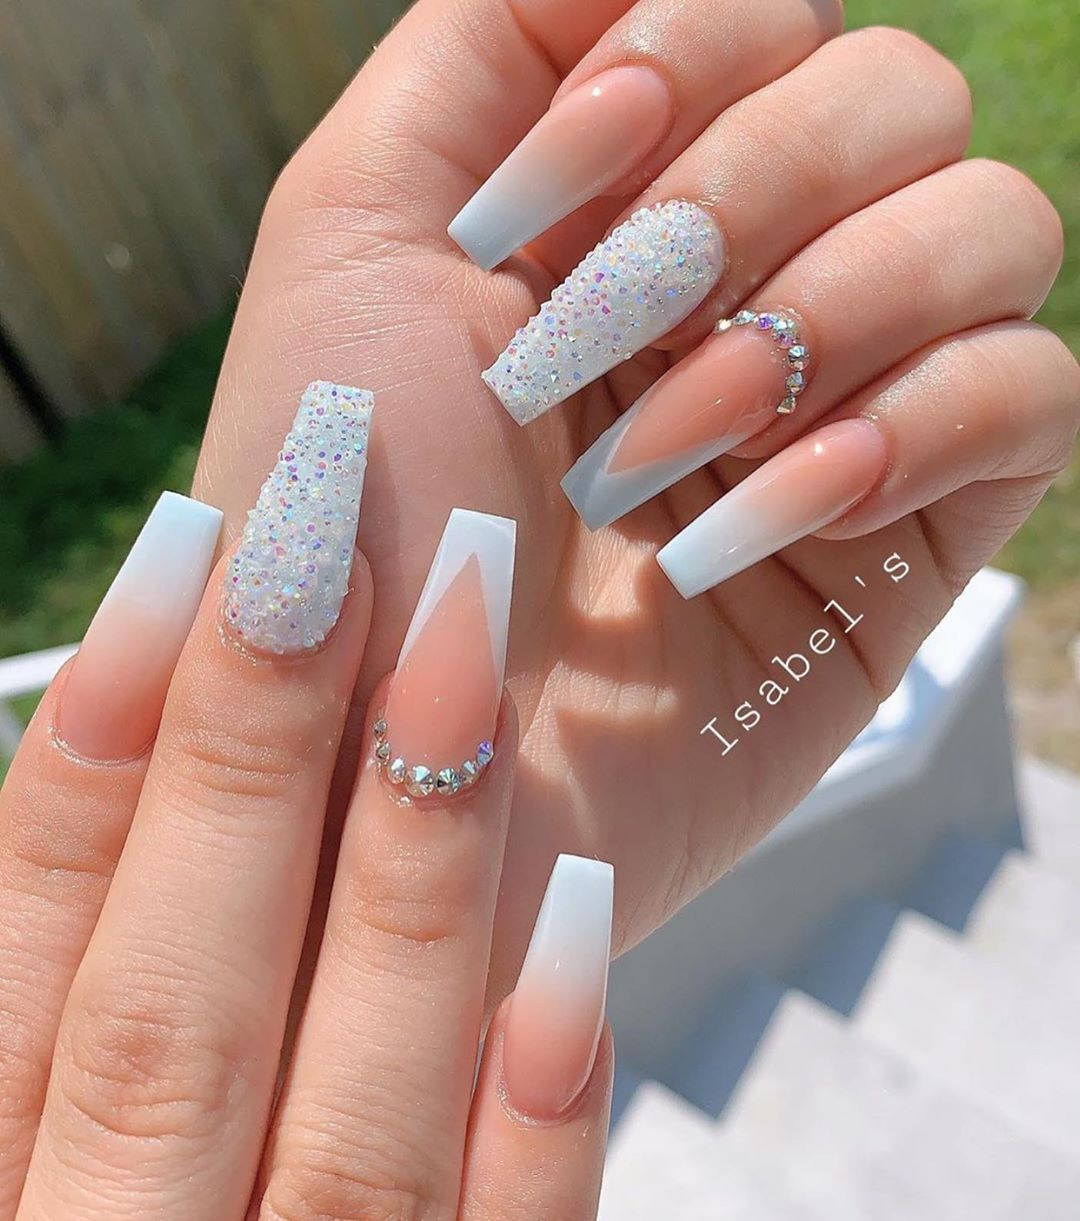 Nailfetishh On Instagram Snow Do You Prefer Summer Or Winter Isabelsnails Ombre Nails Glitter Best Acrylic Nails Winter Nails Acrylic